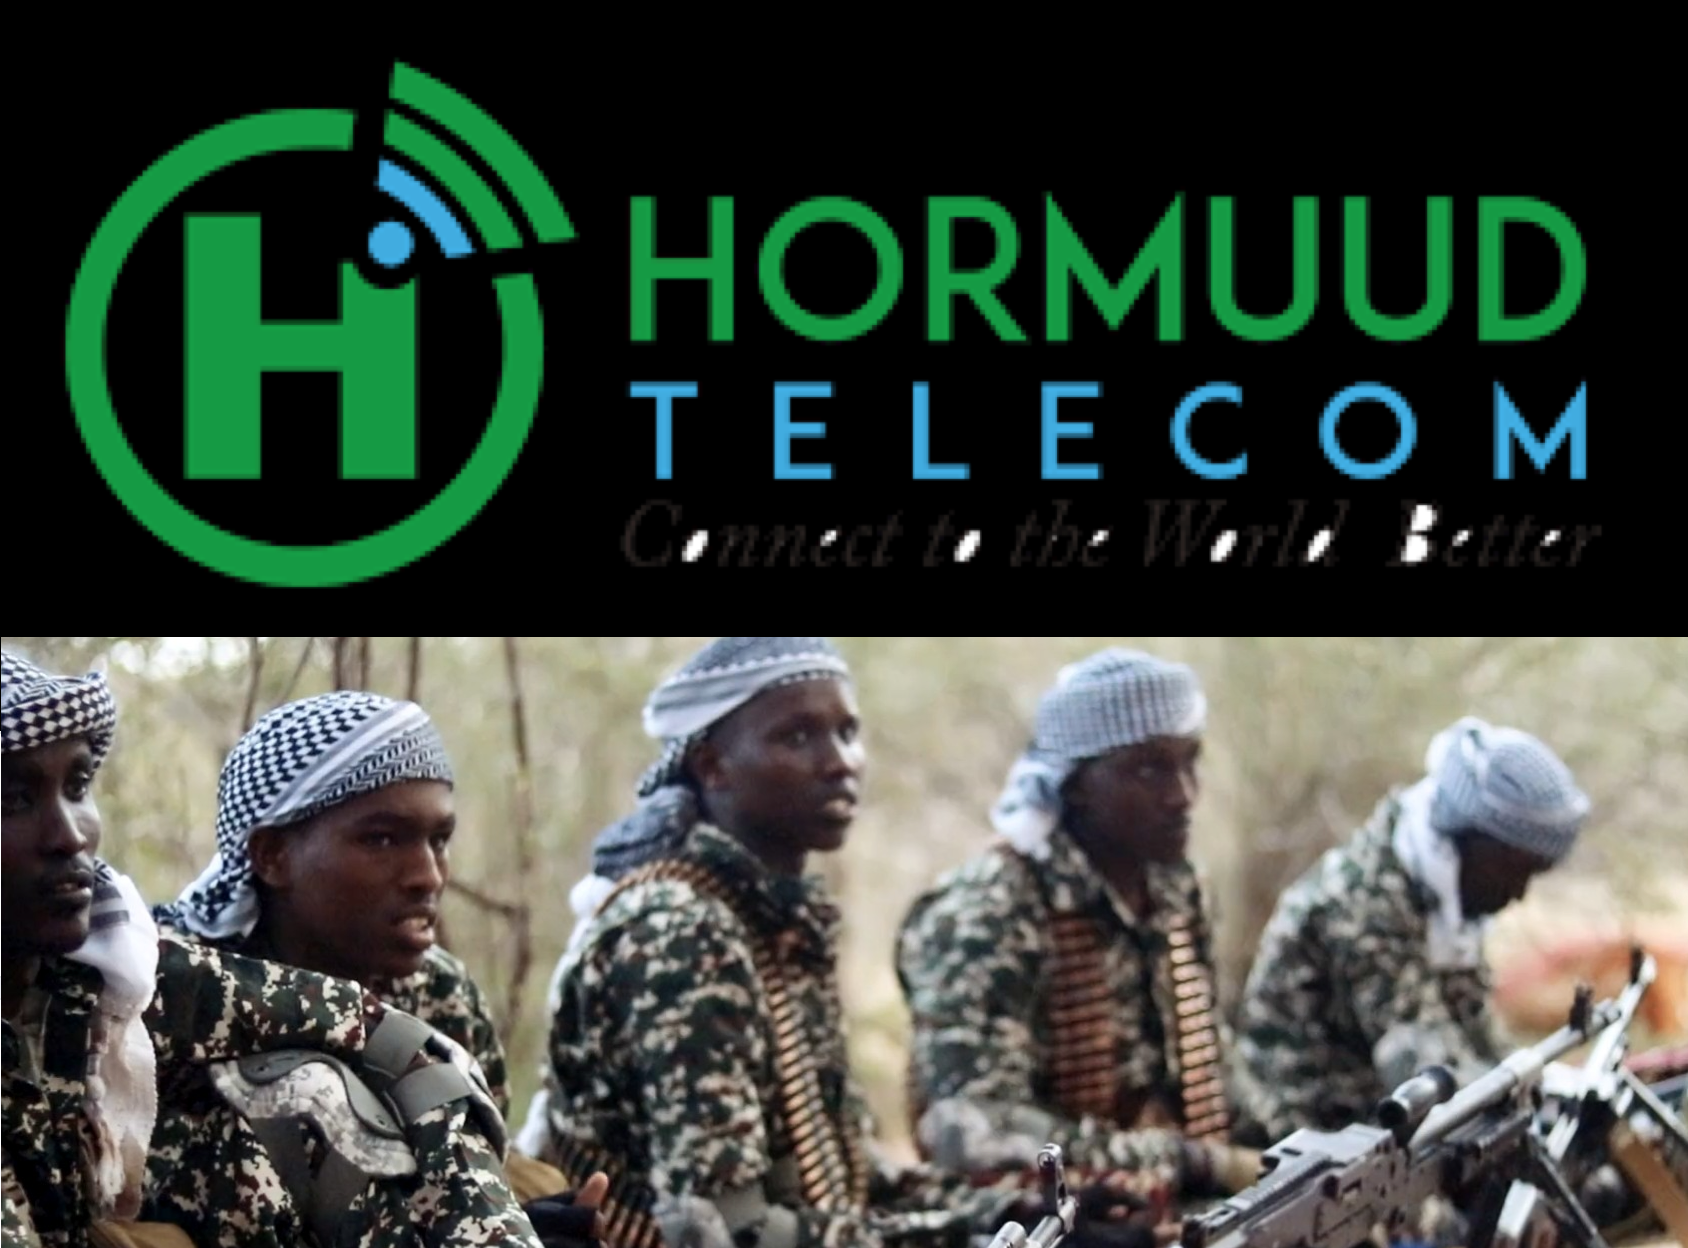 Hormuud Telecom, Taaj Express, Salaam Bank and Dahabshiil Money Transfer directly pay taxes to Al-Shabaab.